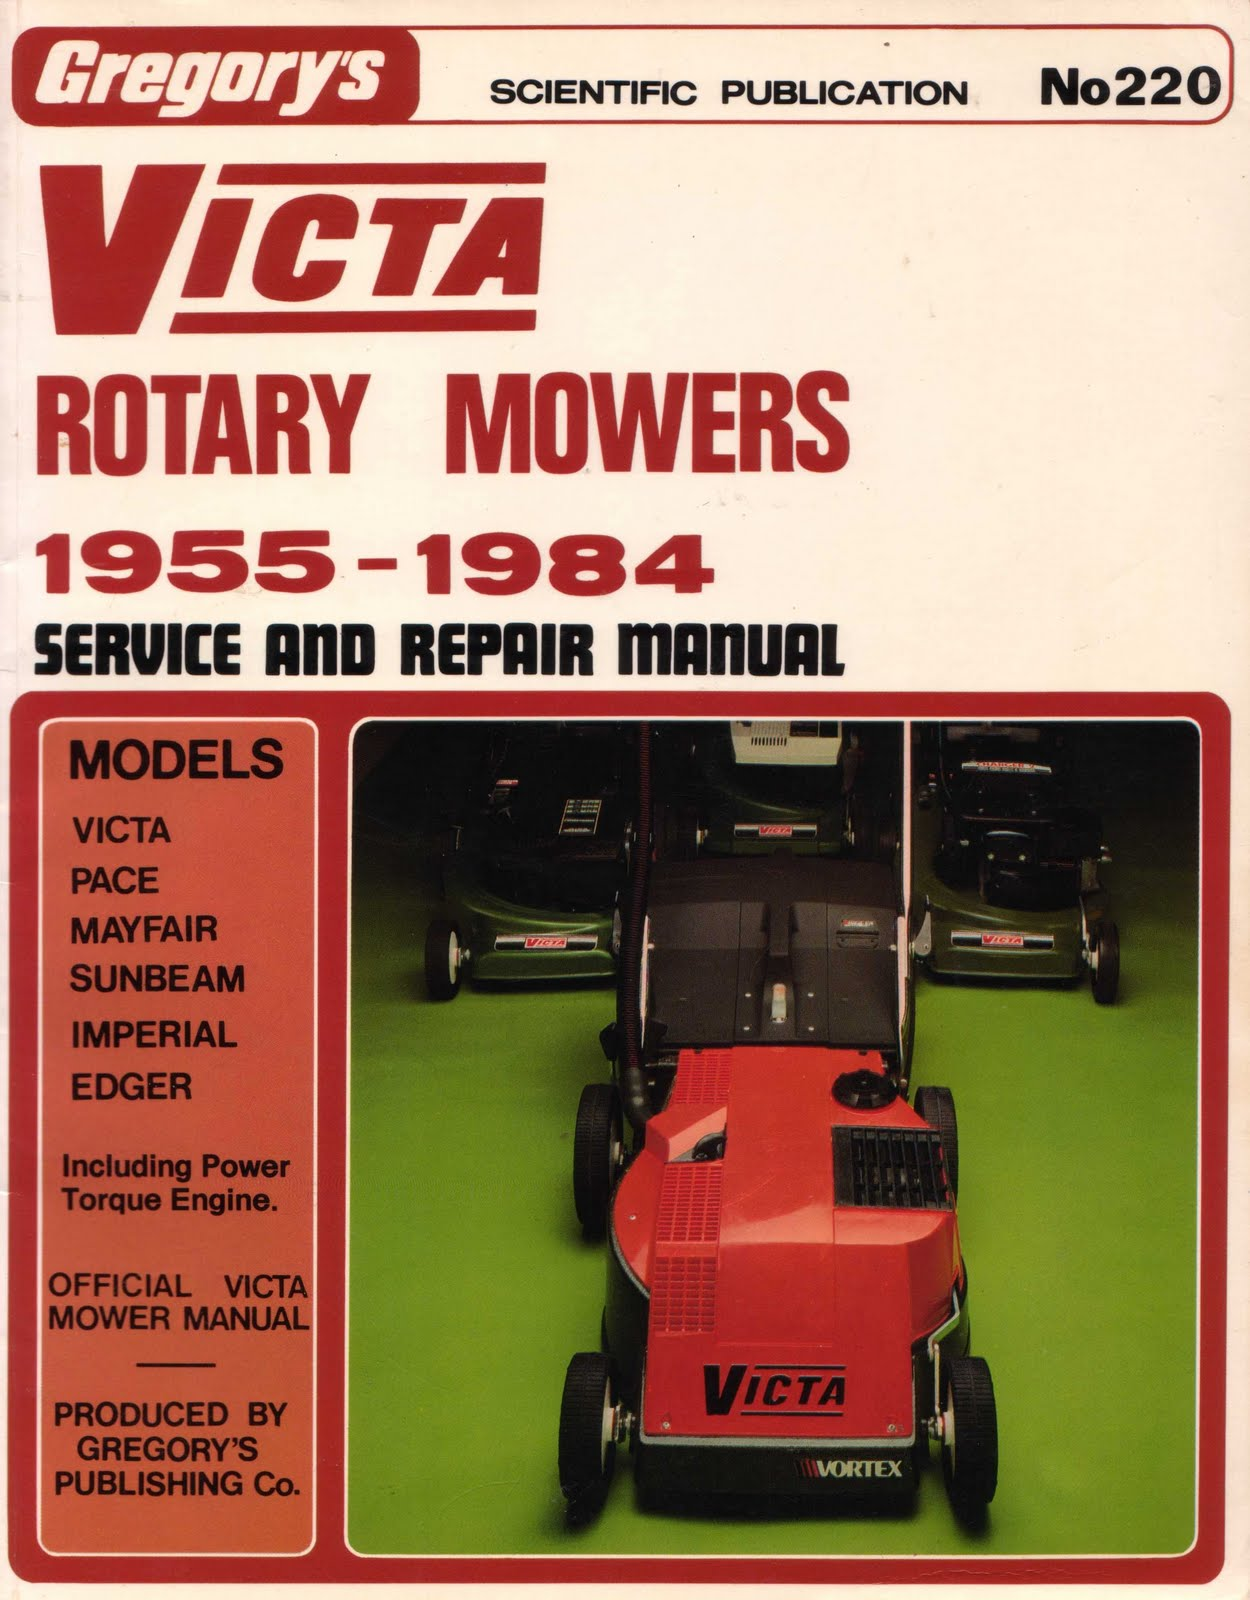 huc gabet victa rotary mowers 1955 1984 service and repair manual rh hucandgabetbooks blogspot com